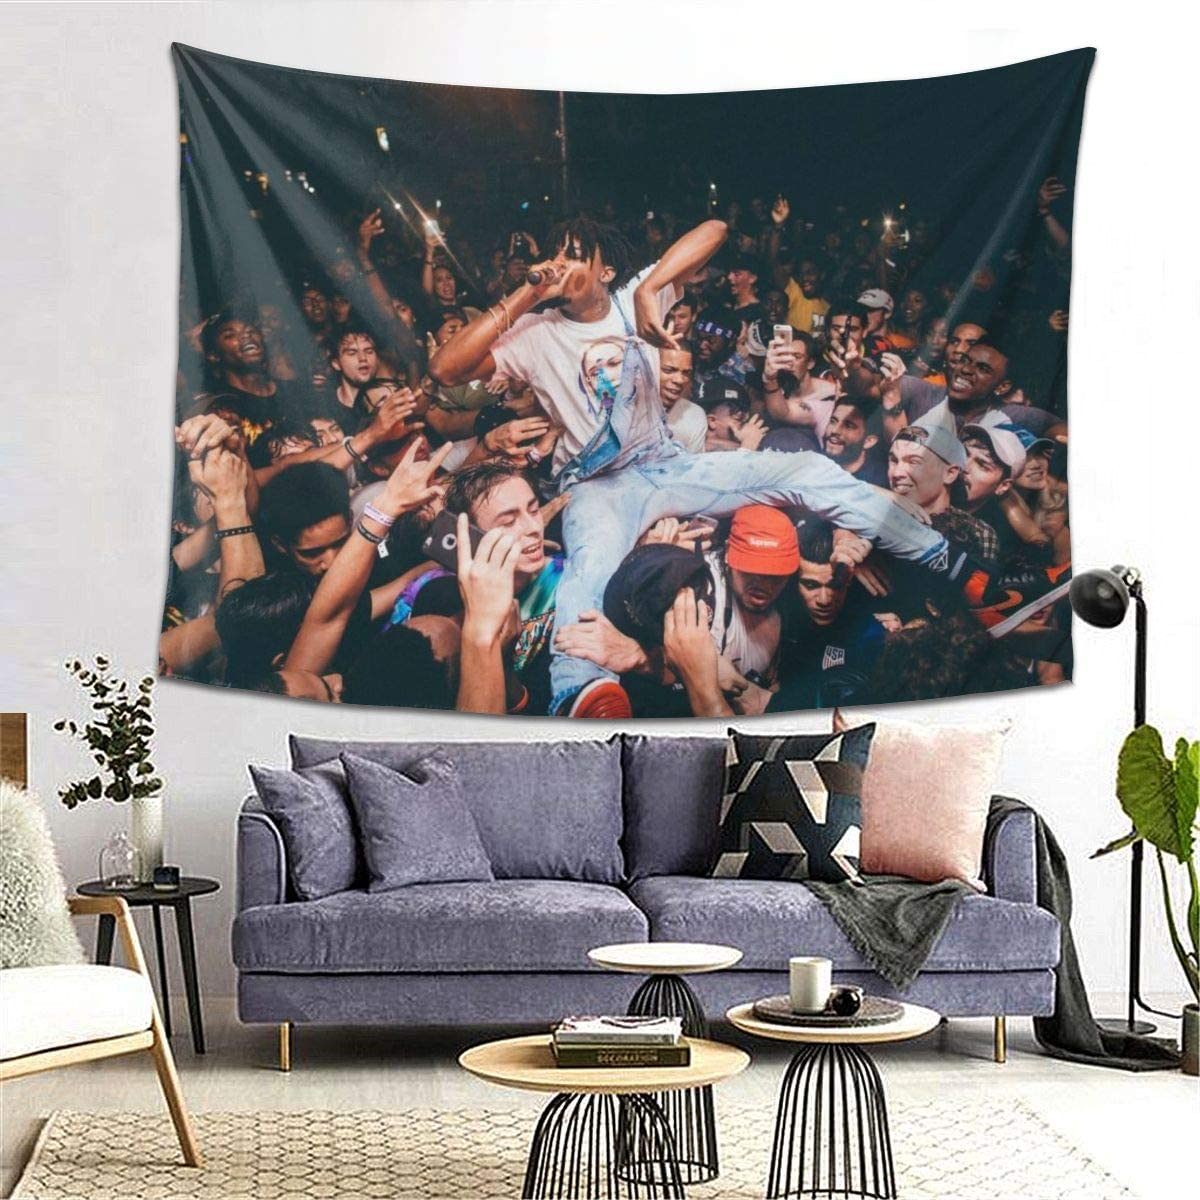 Pla-yboi Ca-rti Fans Tapestry Wall Hanging Tapestries 3D Printing Blanket Wall Art For Living Room Bedroom Home Decor 80×60